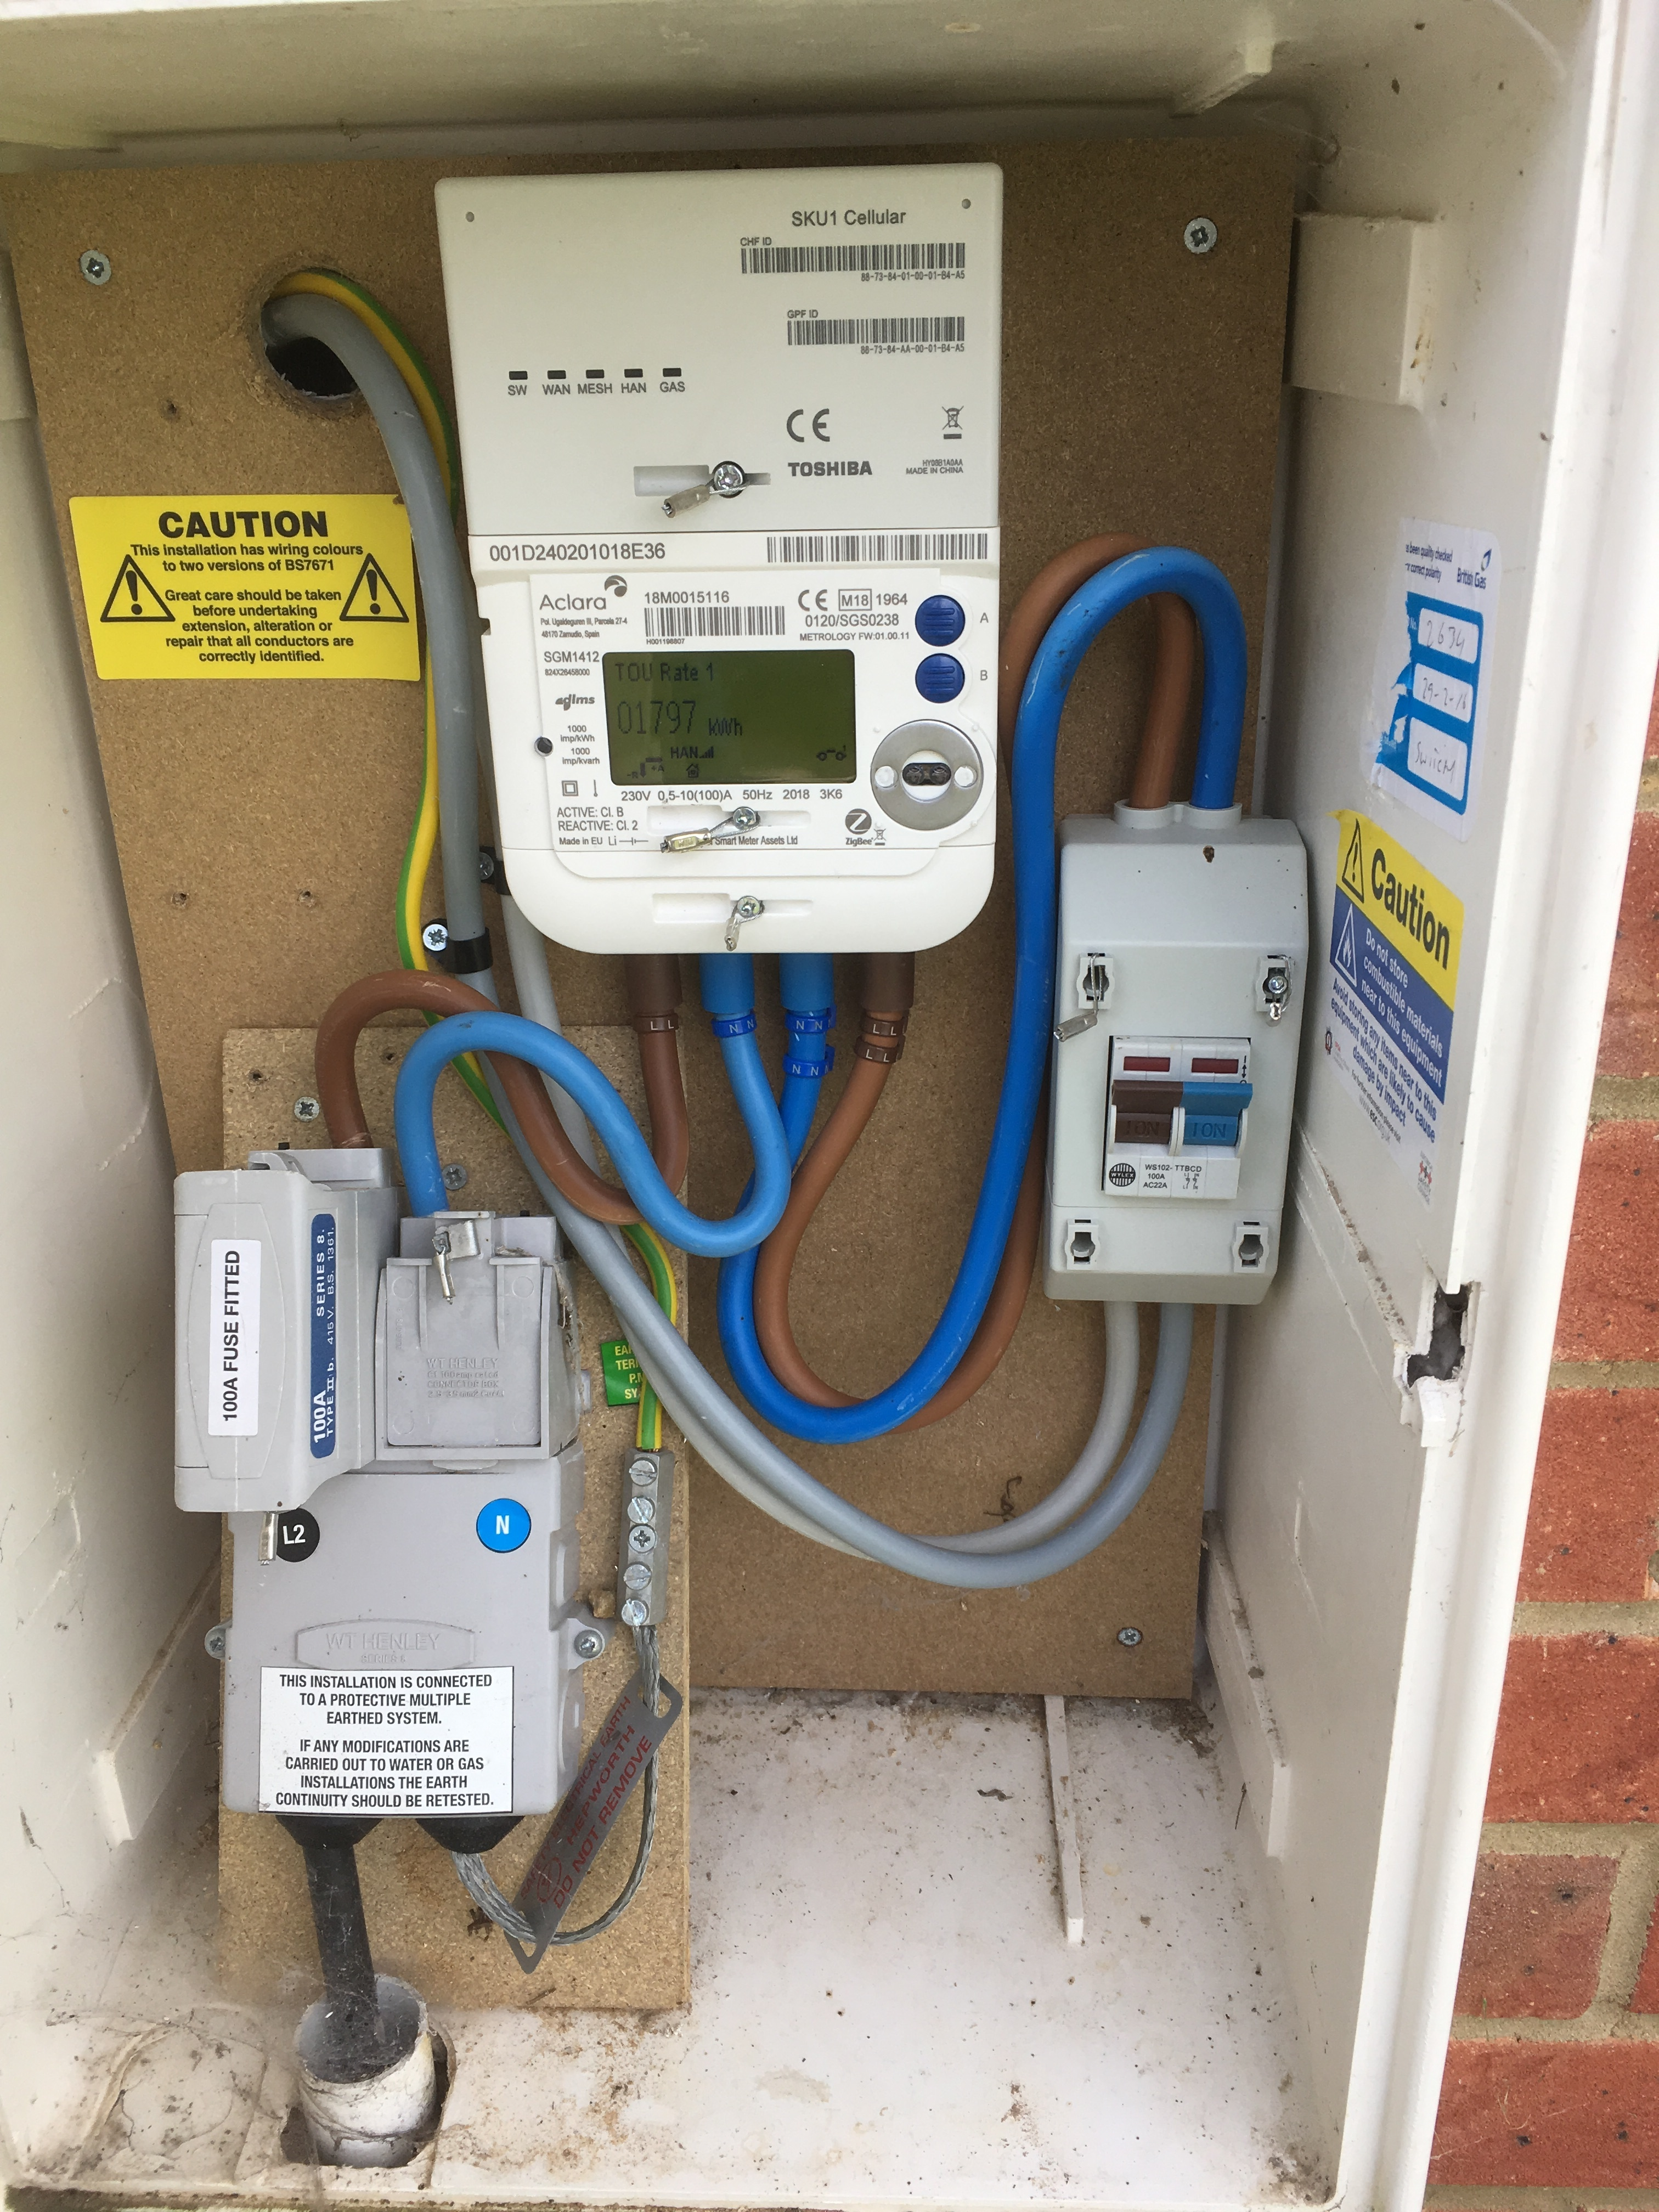 Why is my SMETS2 gas meter not sending readings? | The OVO ForumThe OVO Forum - OVO Energy